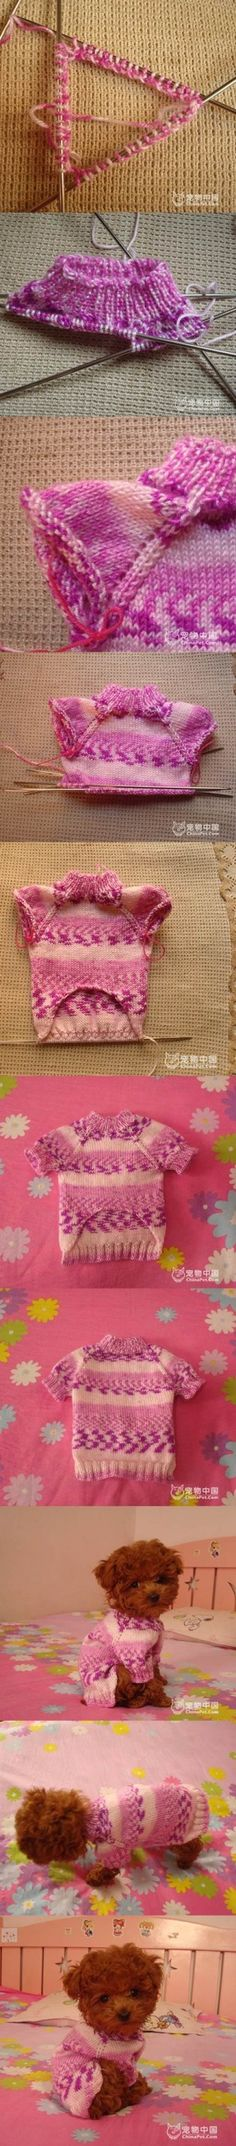 DIY Knitted Dog Sweater 2